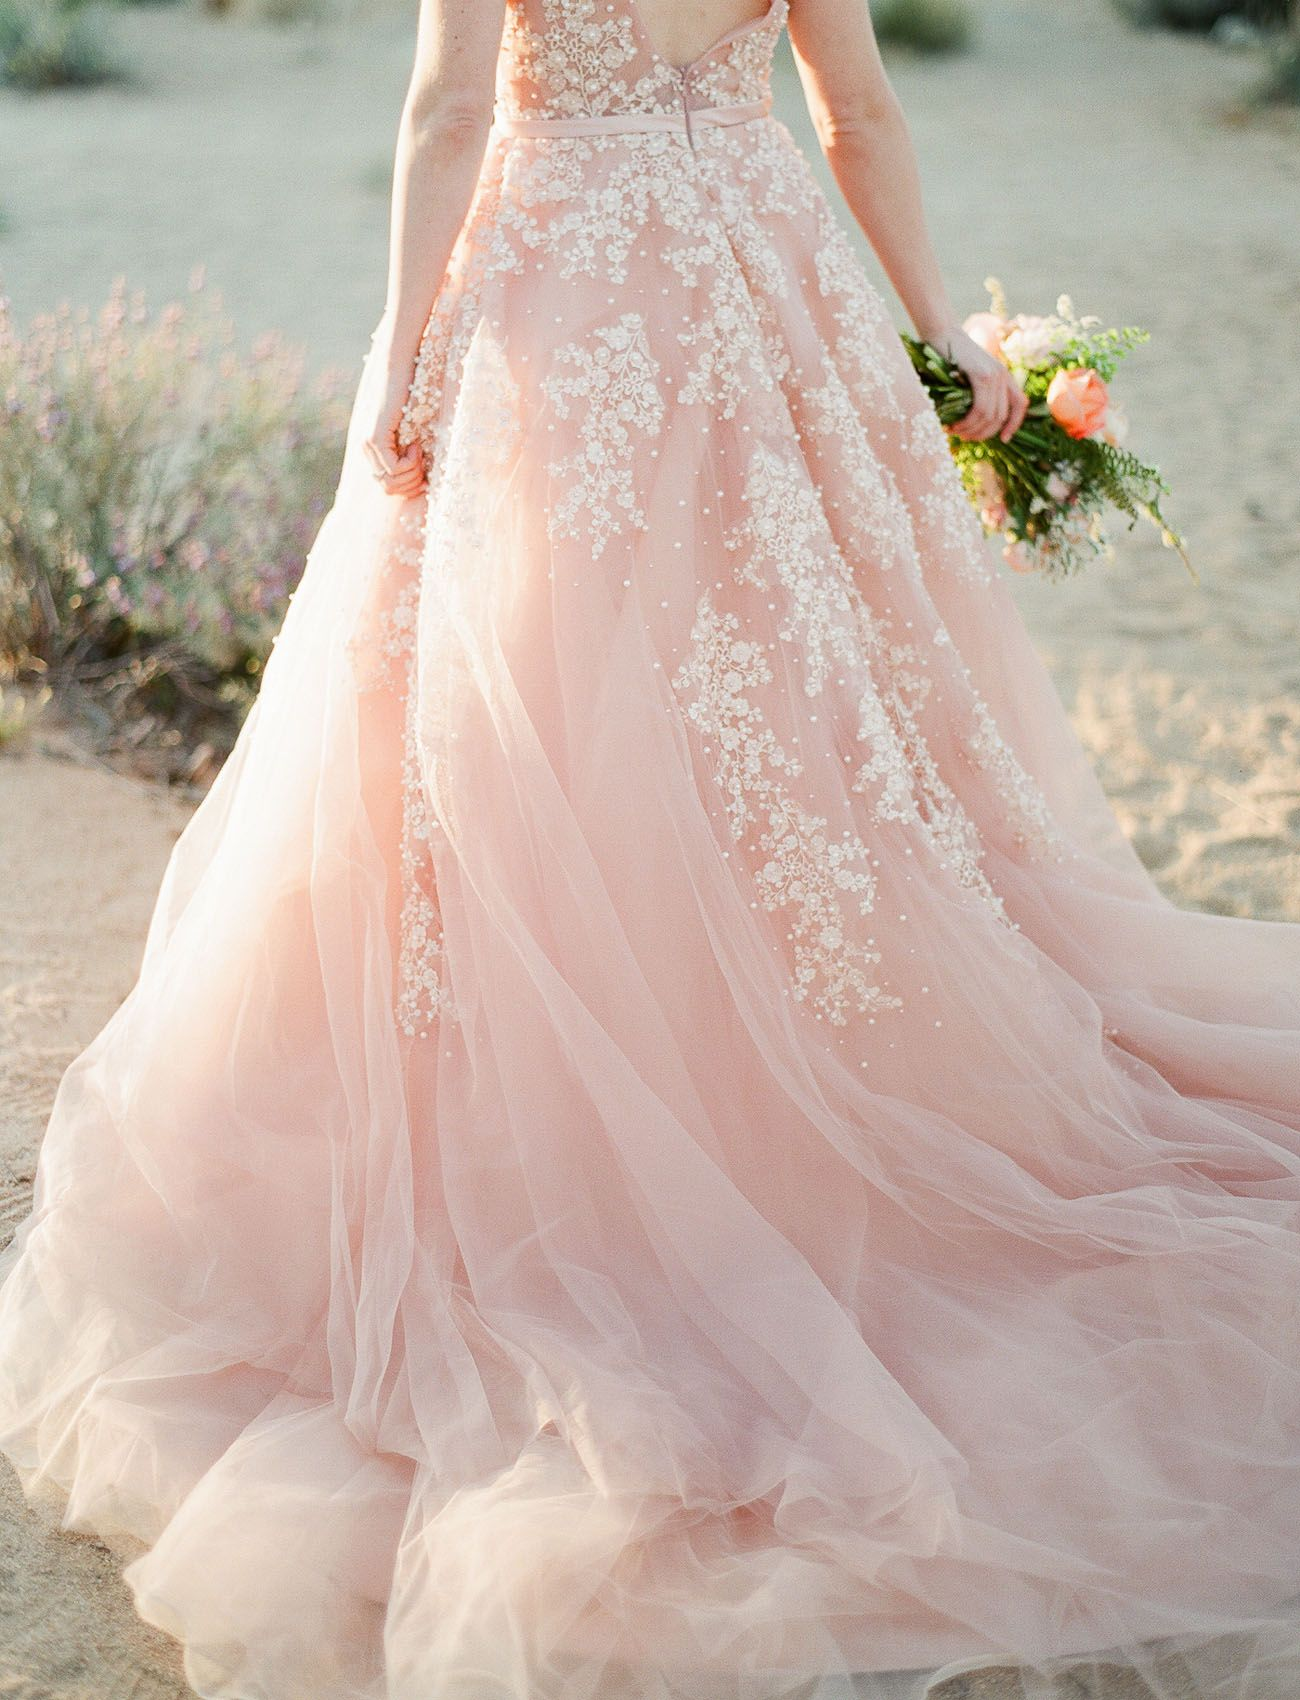 A Dreamy Pink Wedding Dress Captured In Joshua Tree Blush Pink